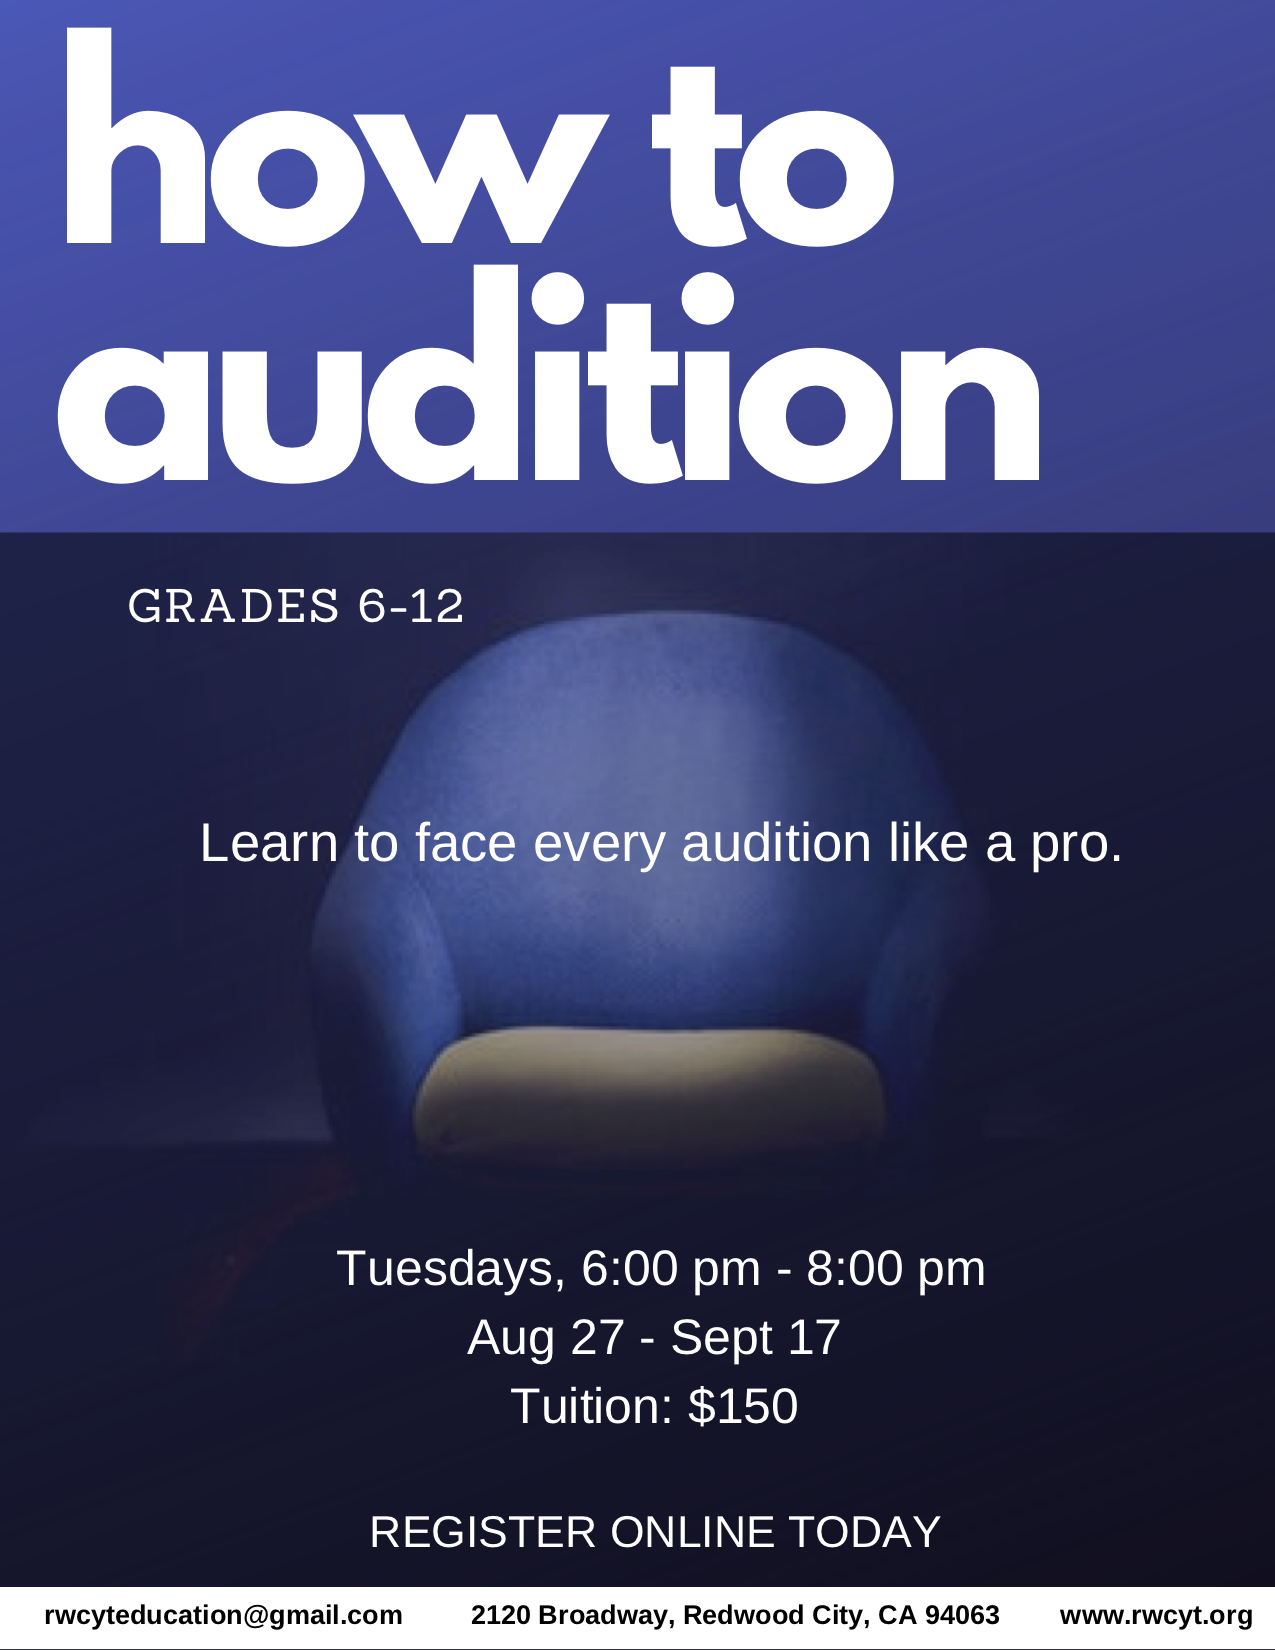 How to Audition Grades 6-12